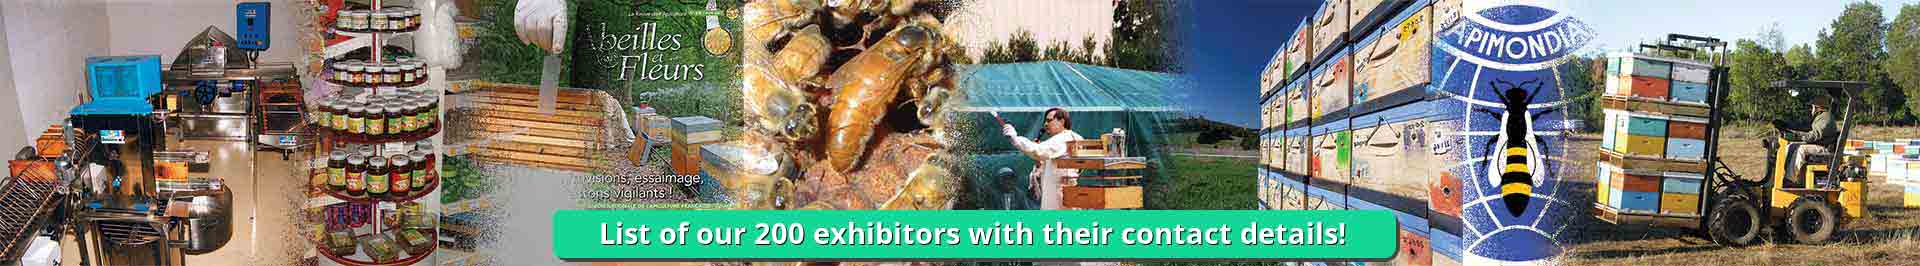 List of exhibitors in Apiservices - Beekeeping portal